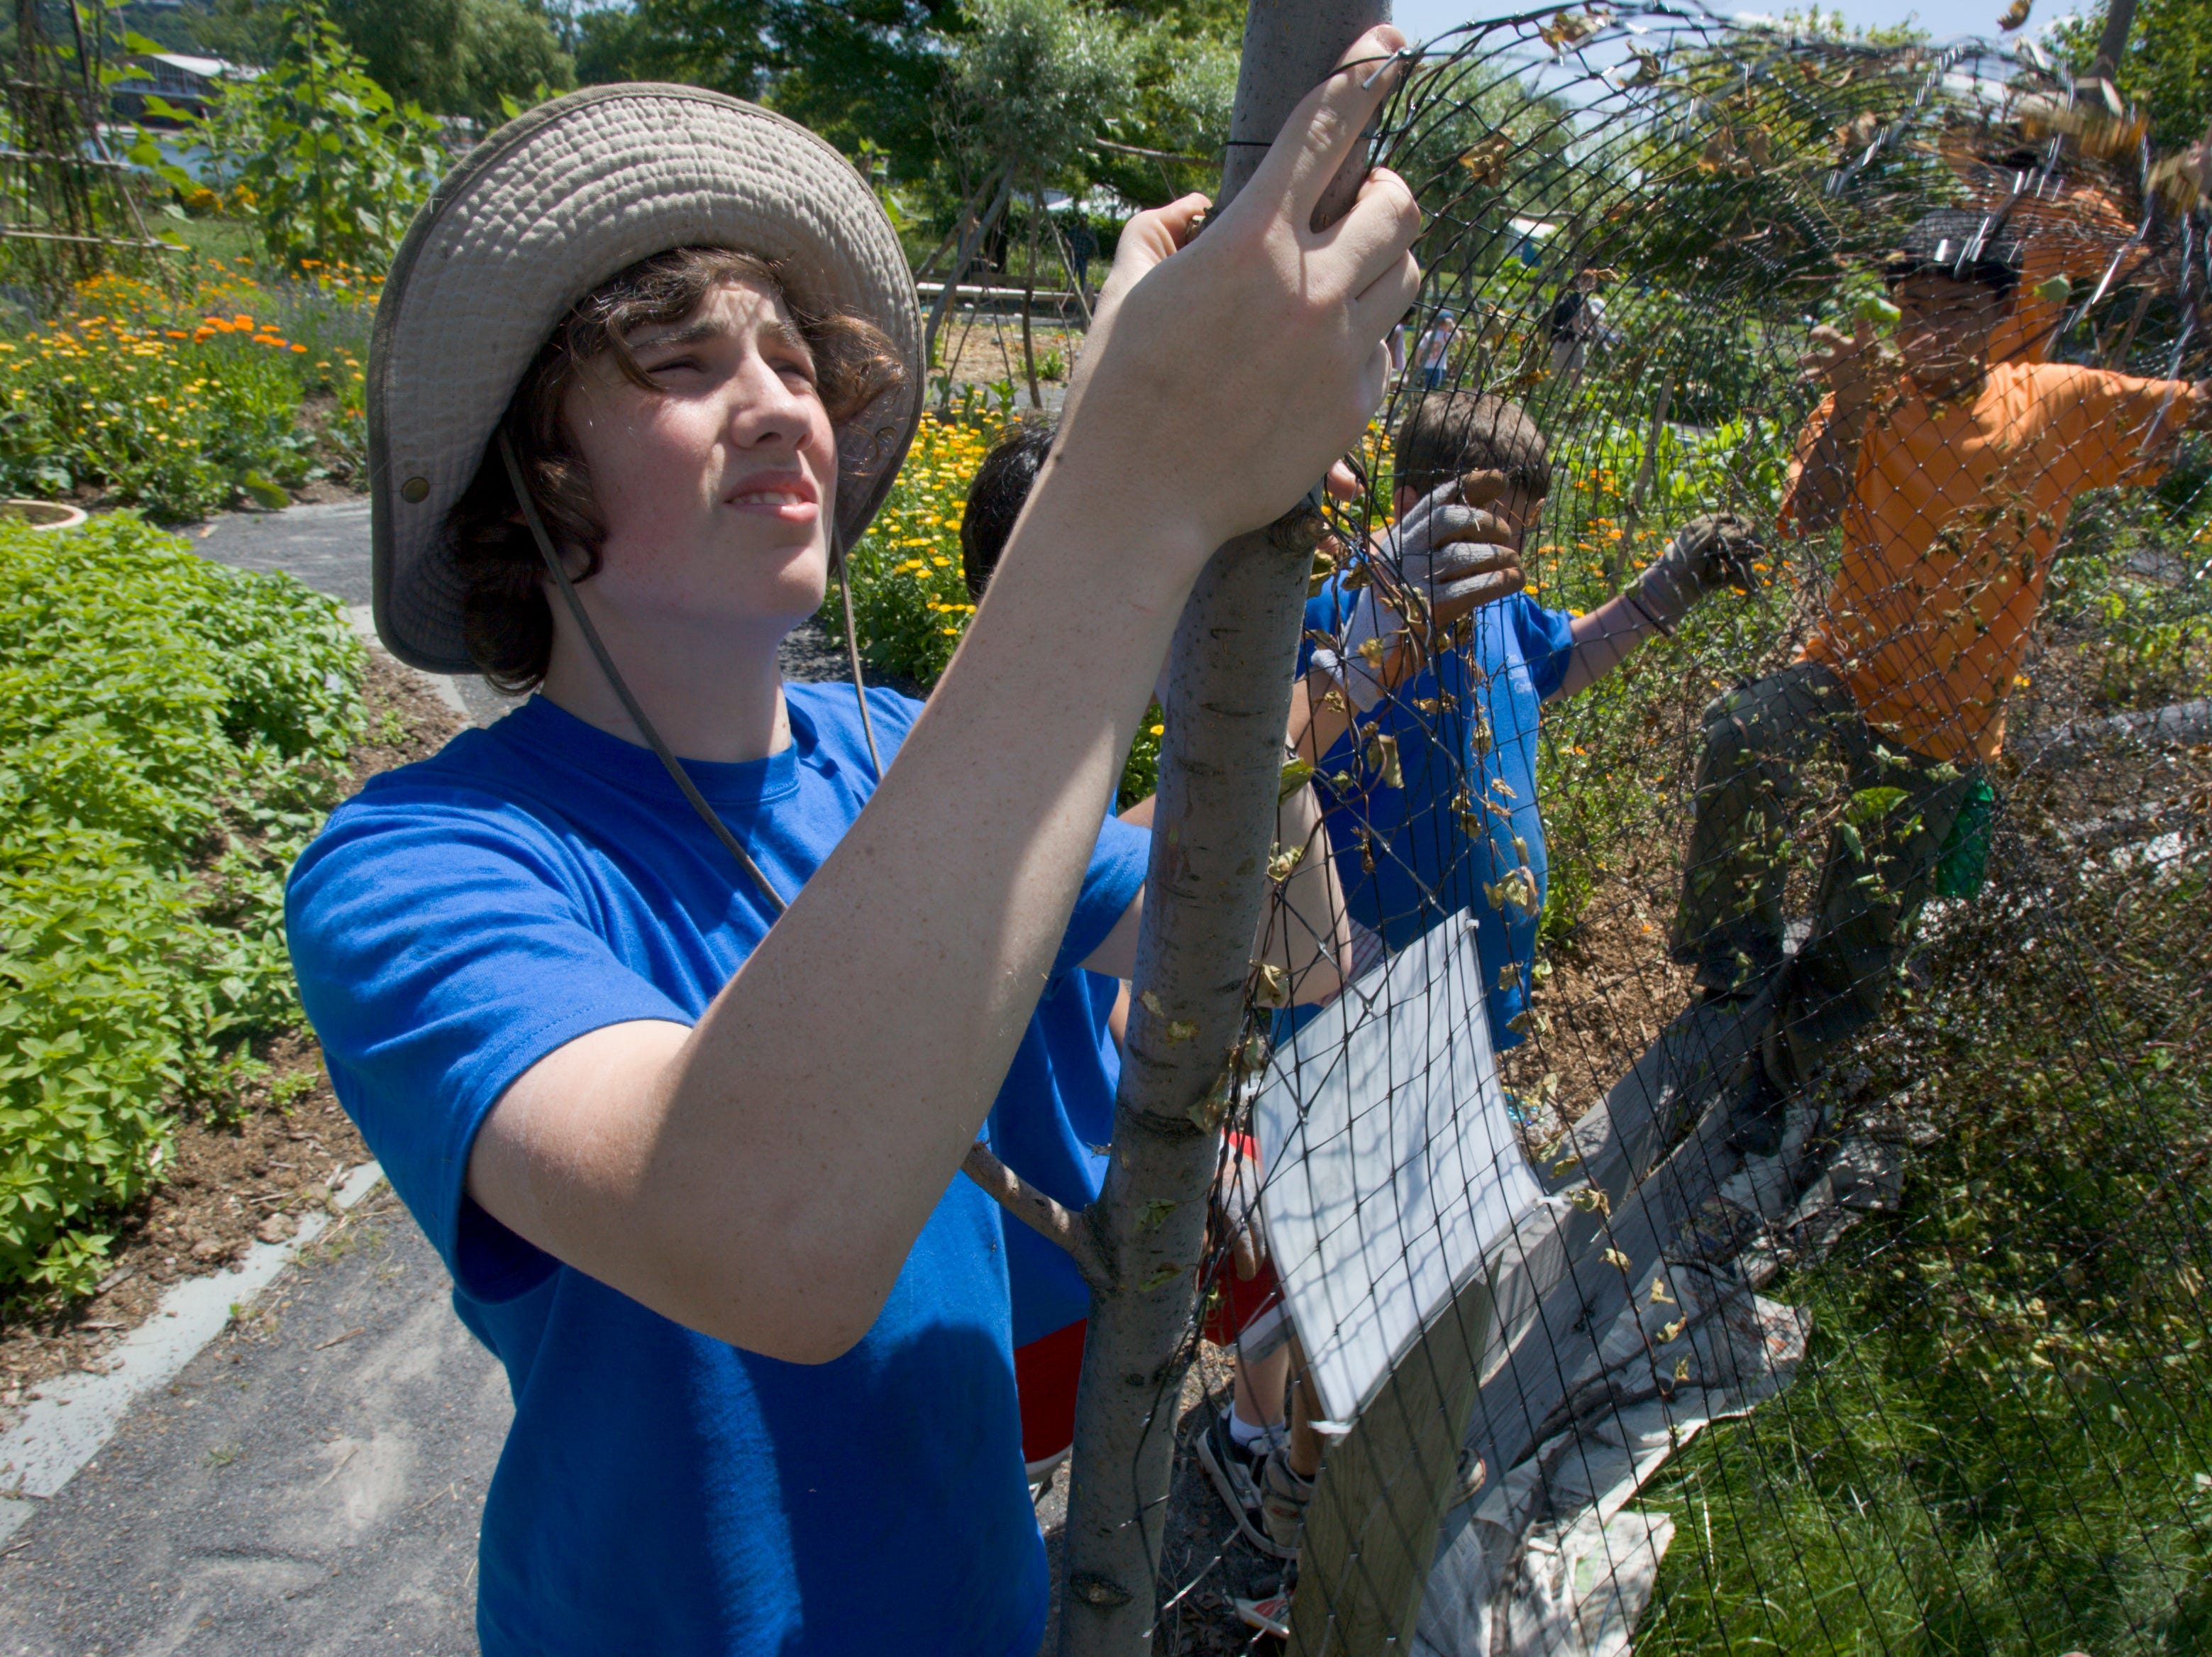 2009: Jared Dugan puts up a deer fence Monday morning at the Ithaca Children's Garden. Dugan is a part of the garden's Youth Horticulture Apprentice Program, where teens get paid to work in the garden four days a week for six weeks.